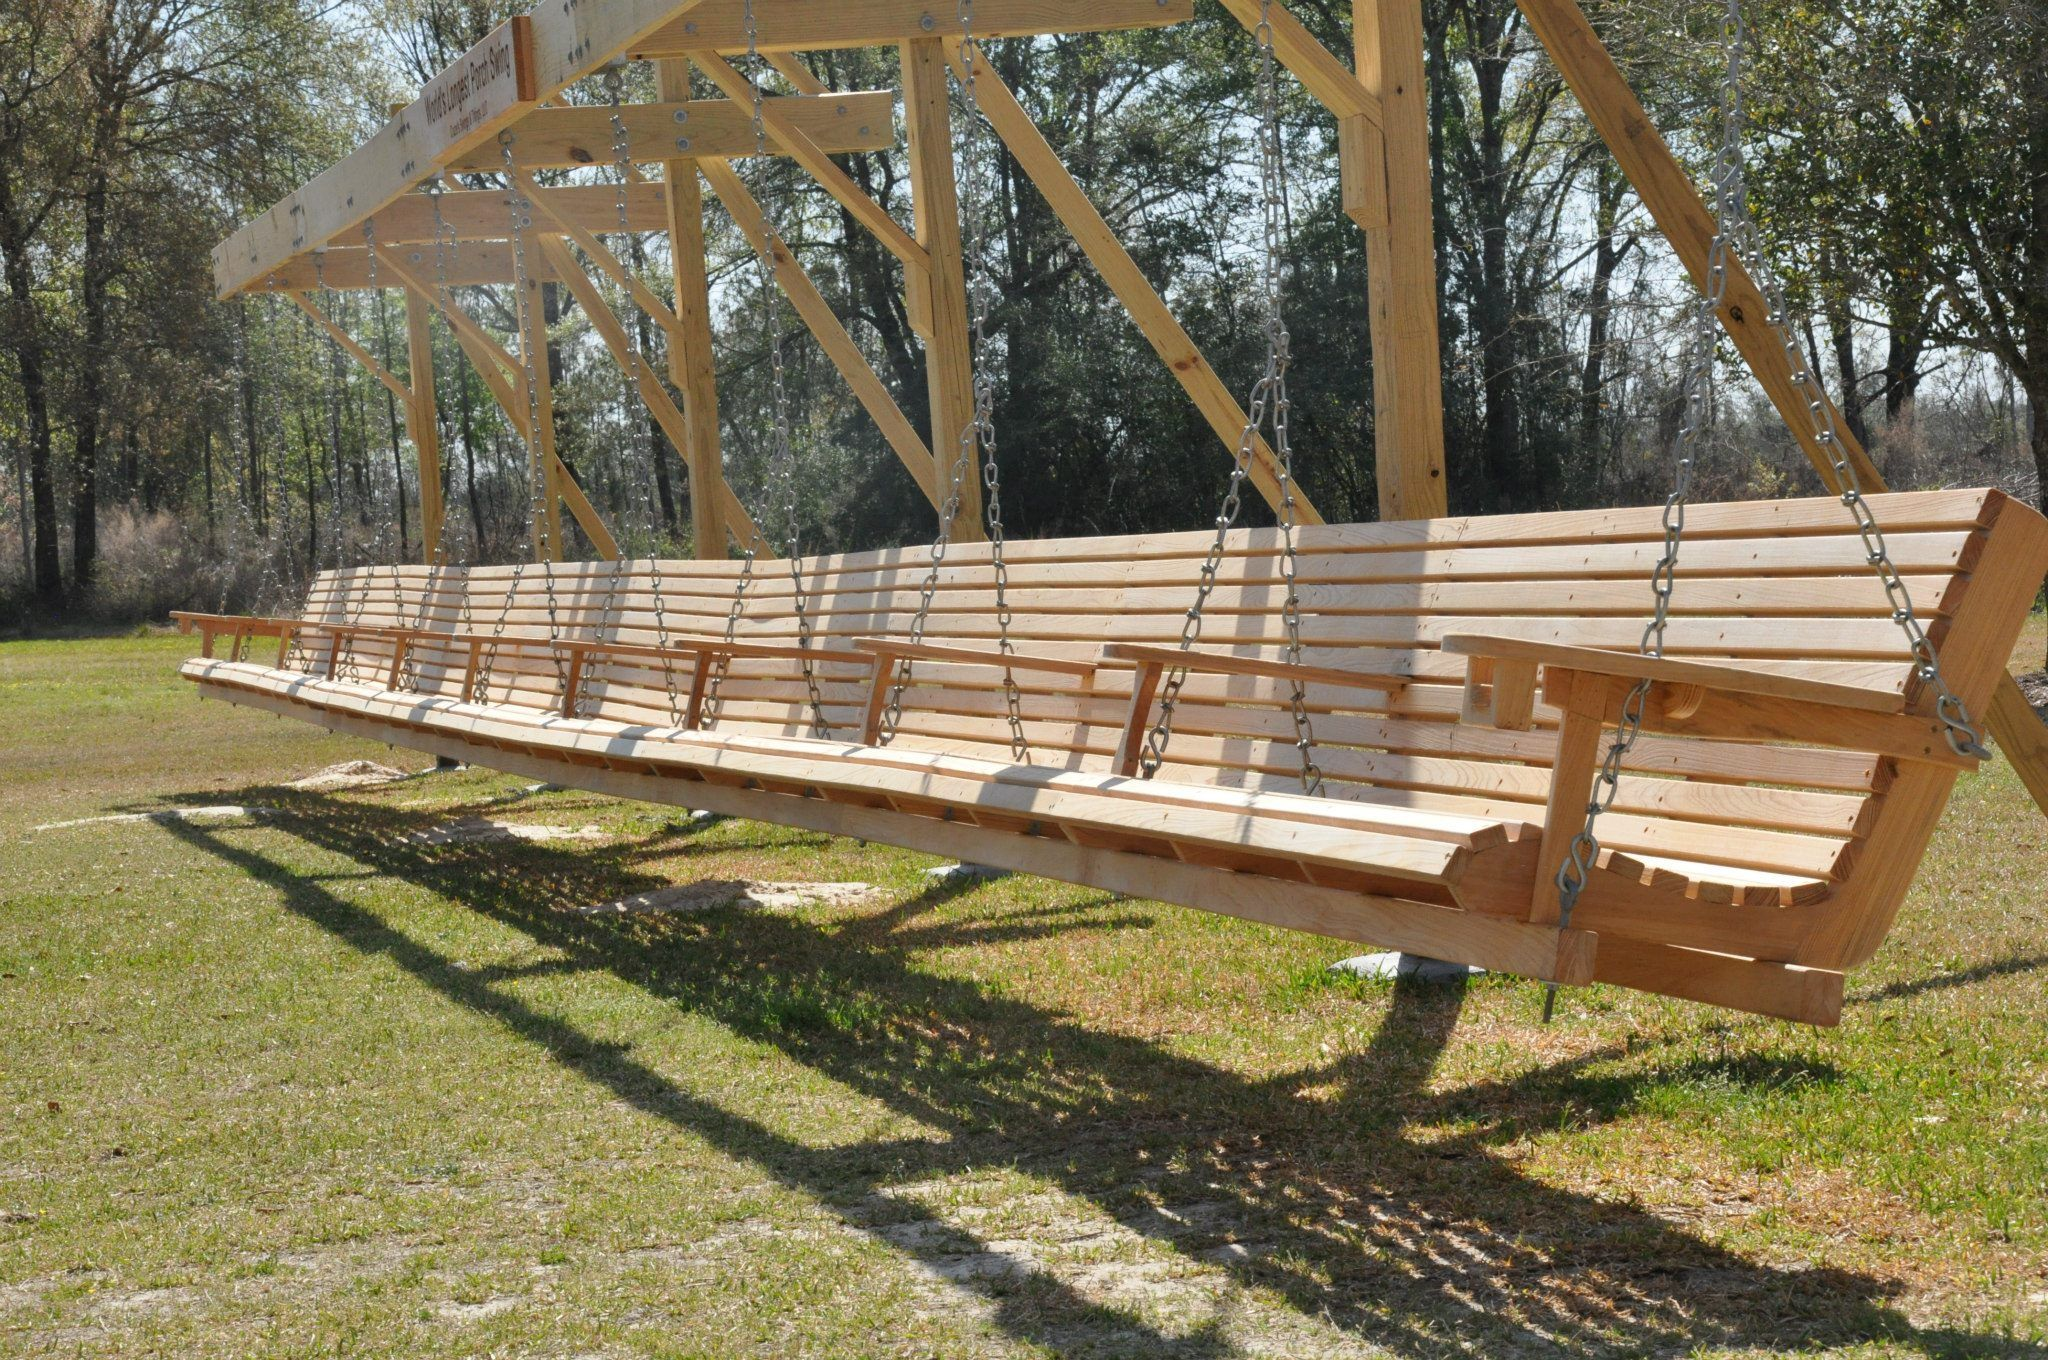 Check Out The Guinness World Record For Longest Porch Swing It Was Built By Christopher Cruze In Louisiana And Hanging Porch Swing Garden Swing Porch Swing